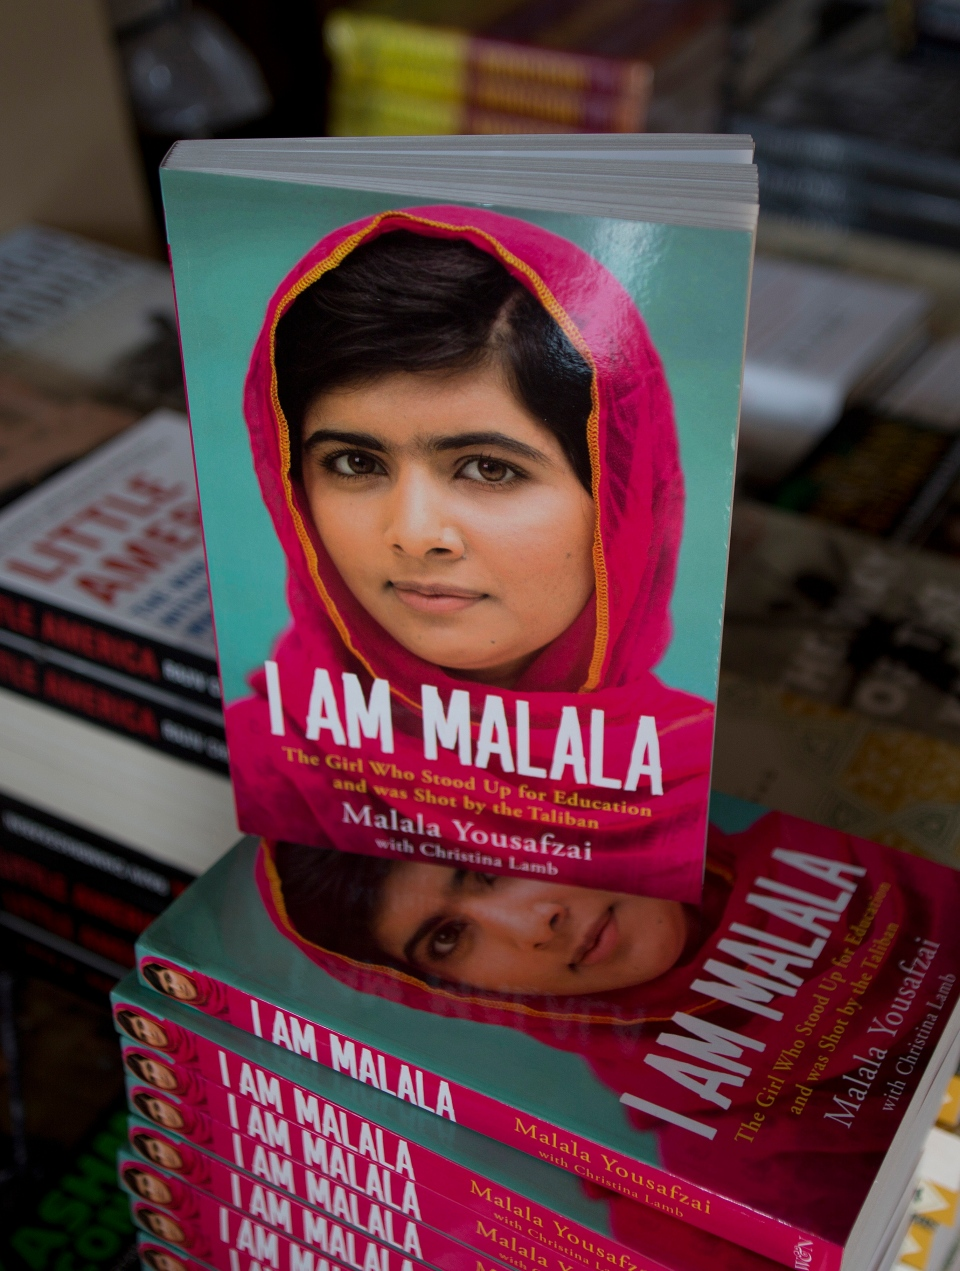 Malala book launch in Pakistan cancelled over security